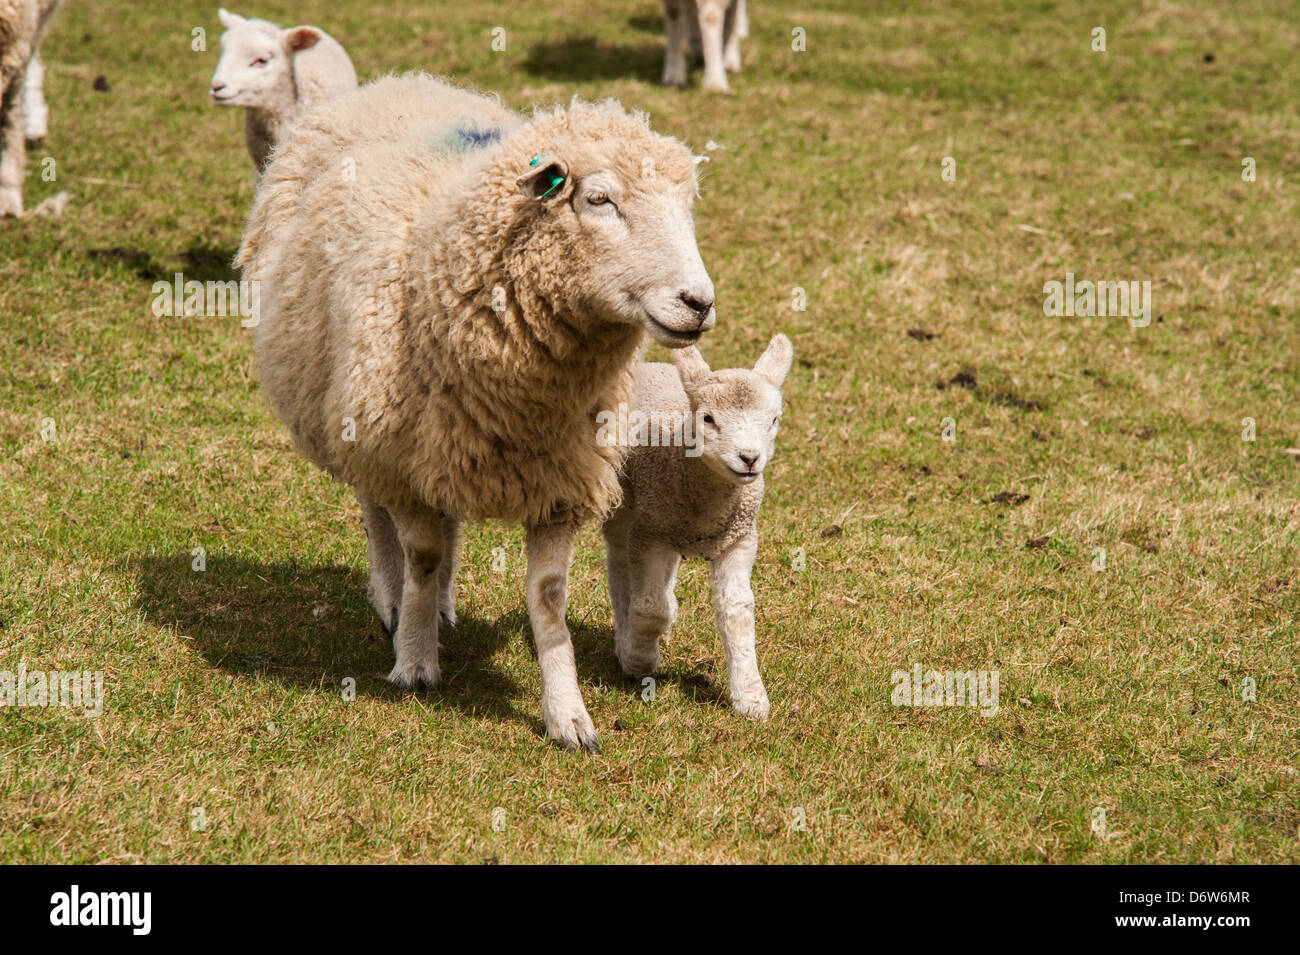 A Ewe protects its lamb in a field during spring. - Stock Image